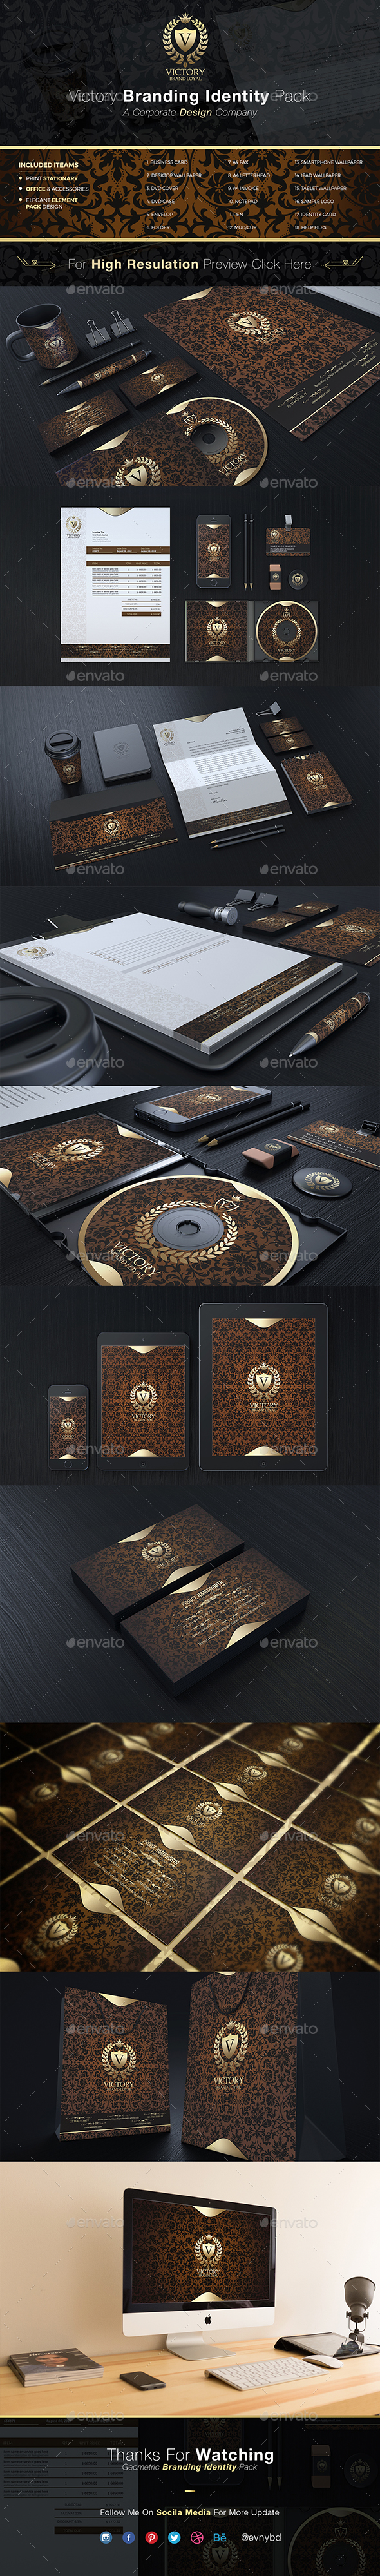 Victory Corporate Identity - Stationery Print Templates